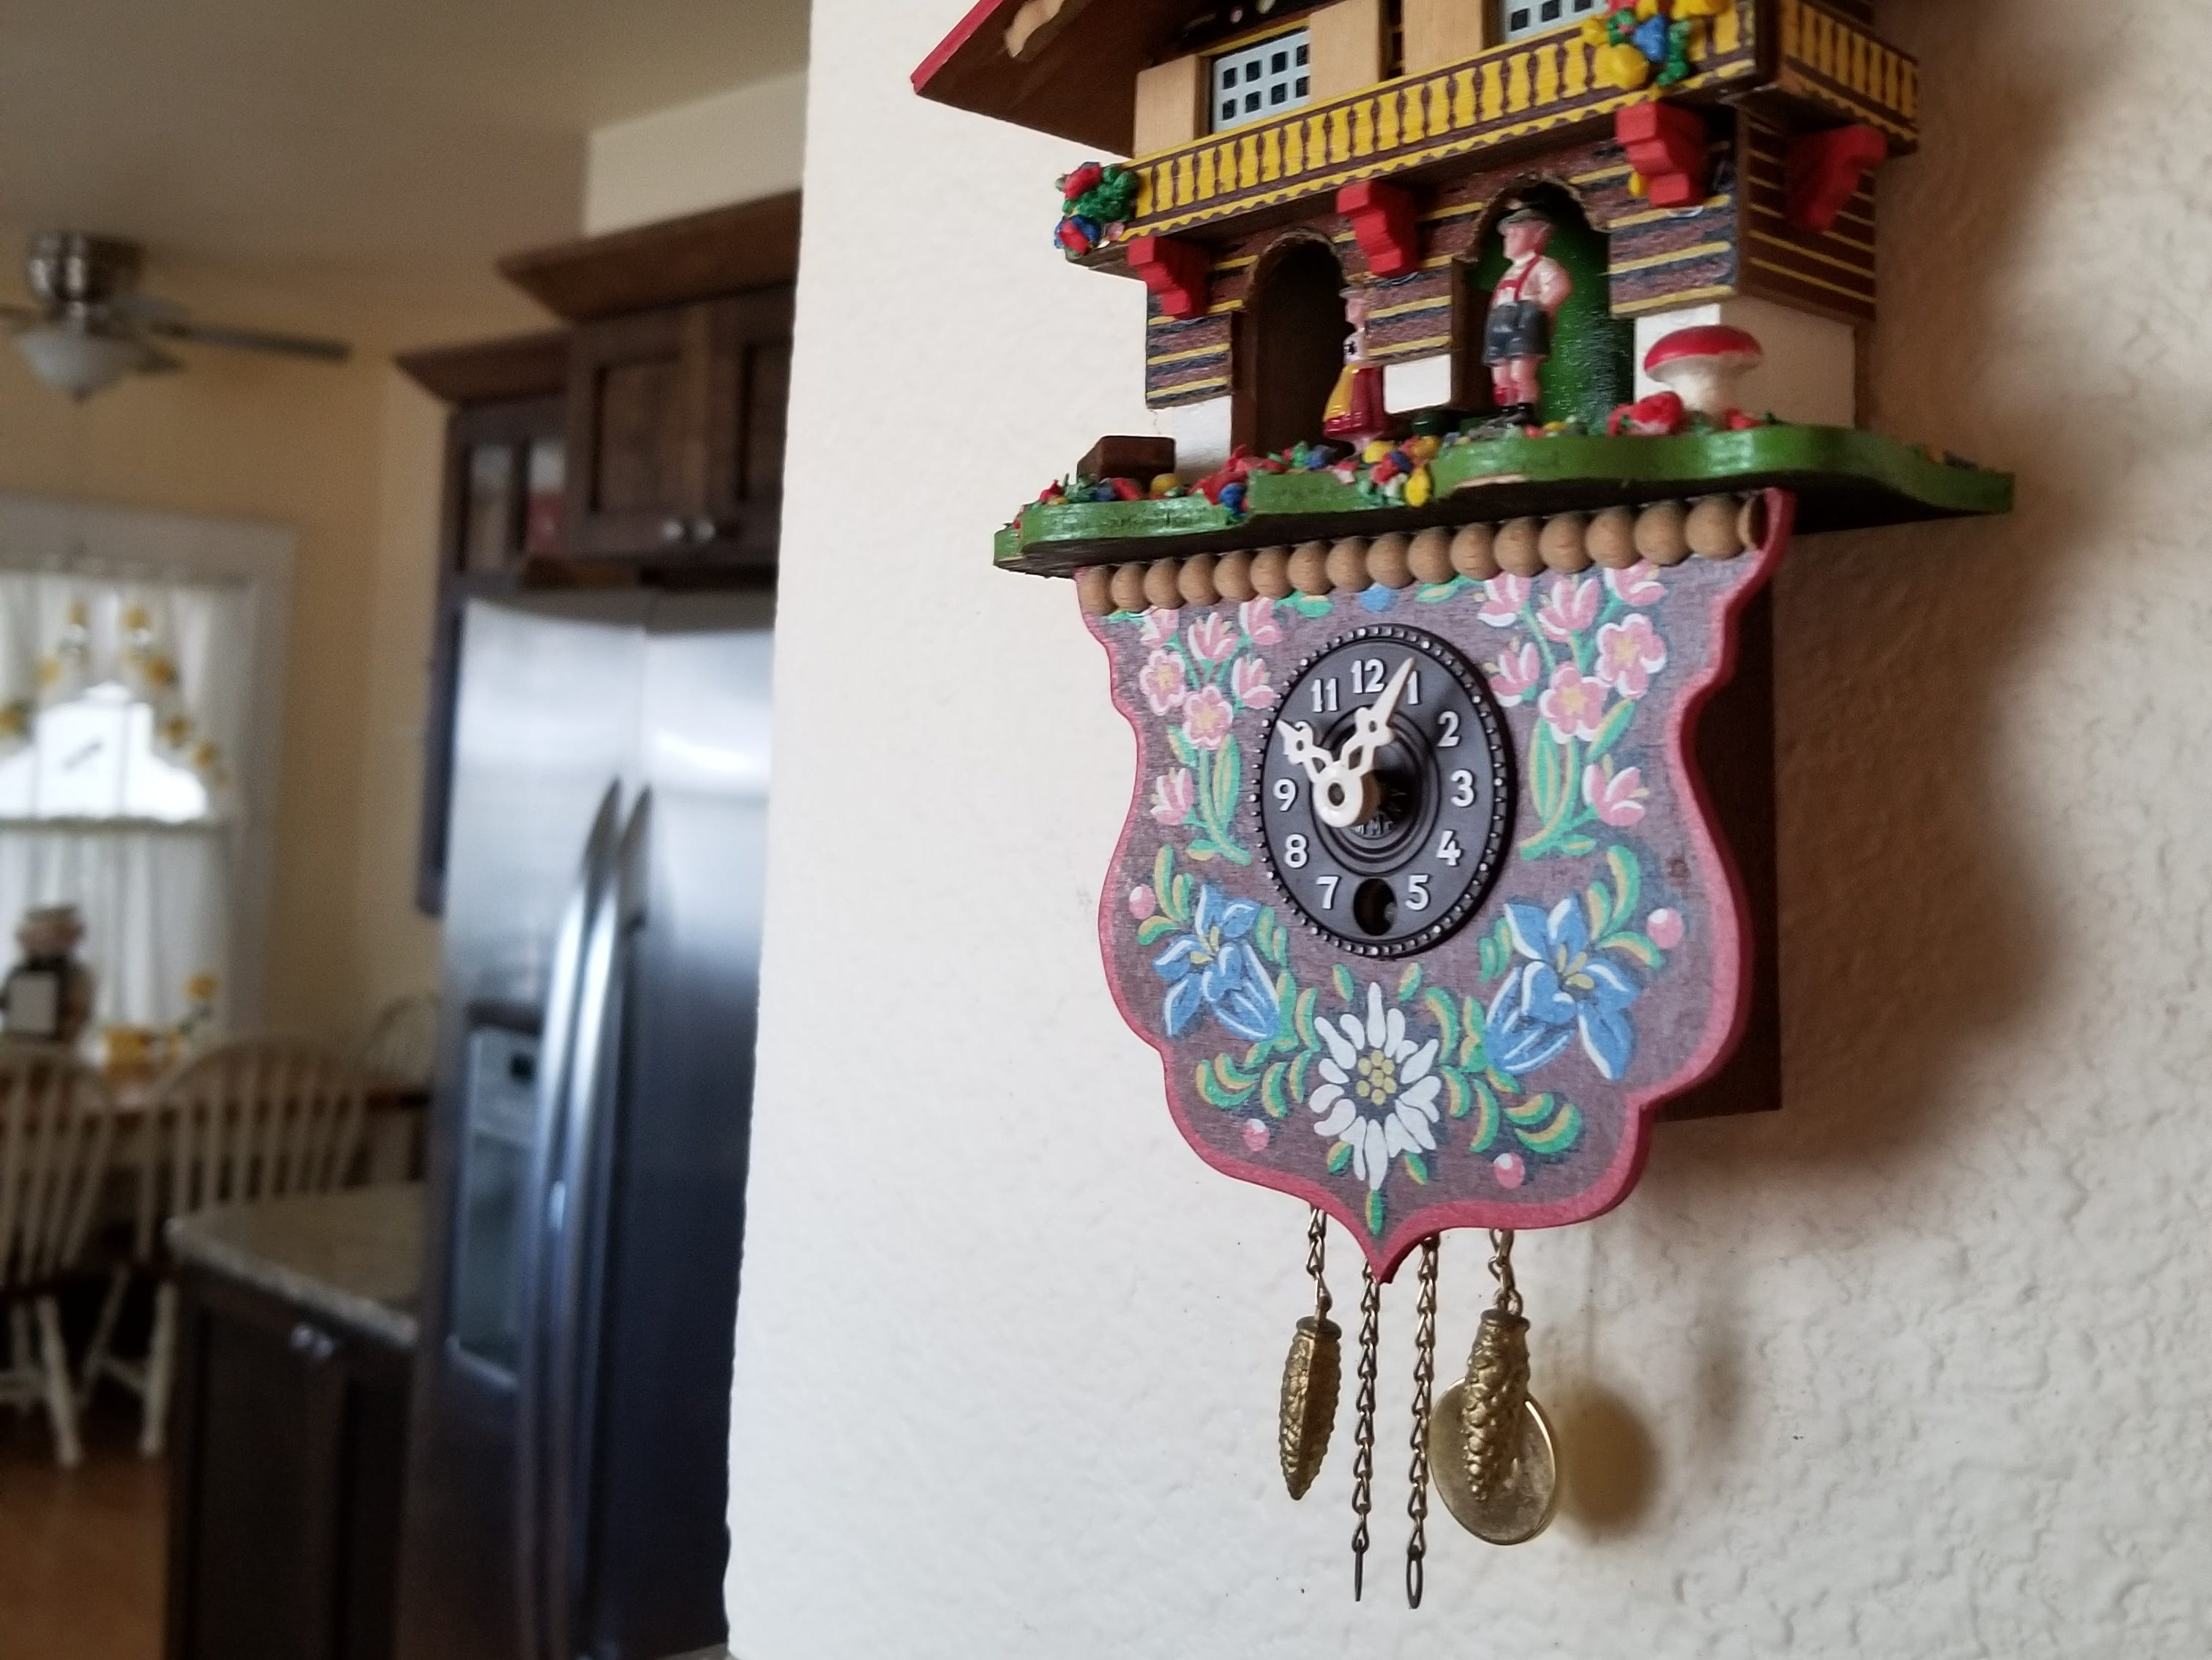 One is welcomed to the kitchen by an wall clock passed on by Lorraine's parents.